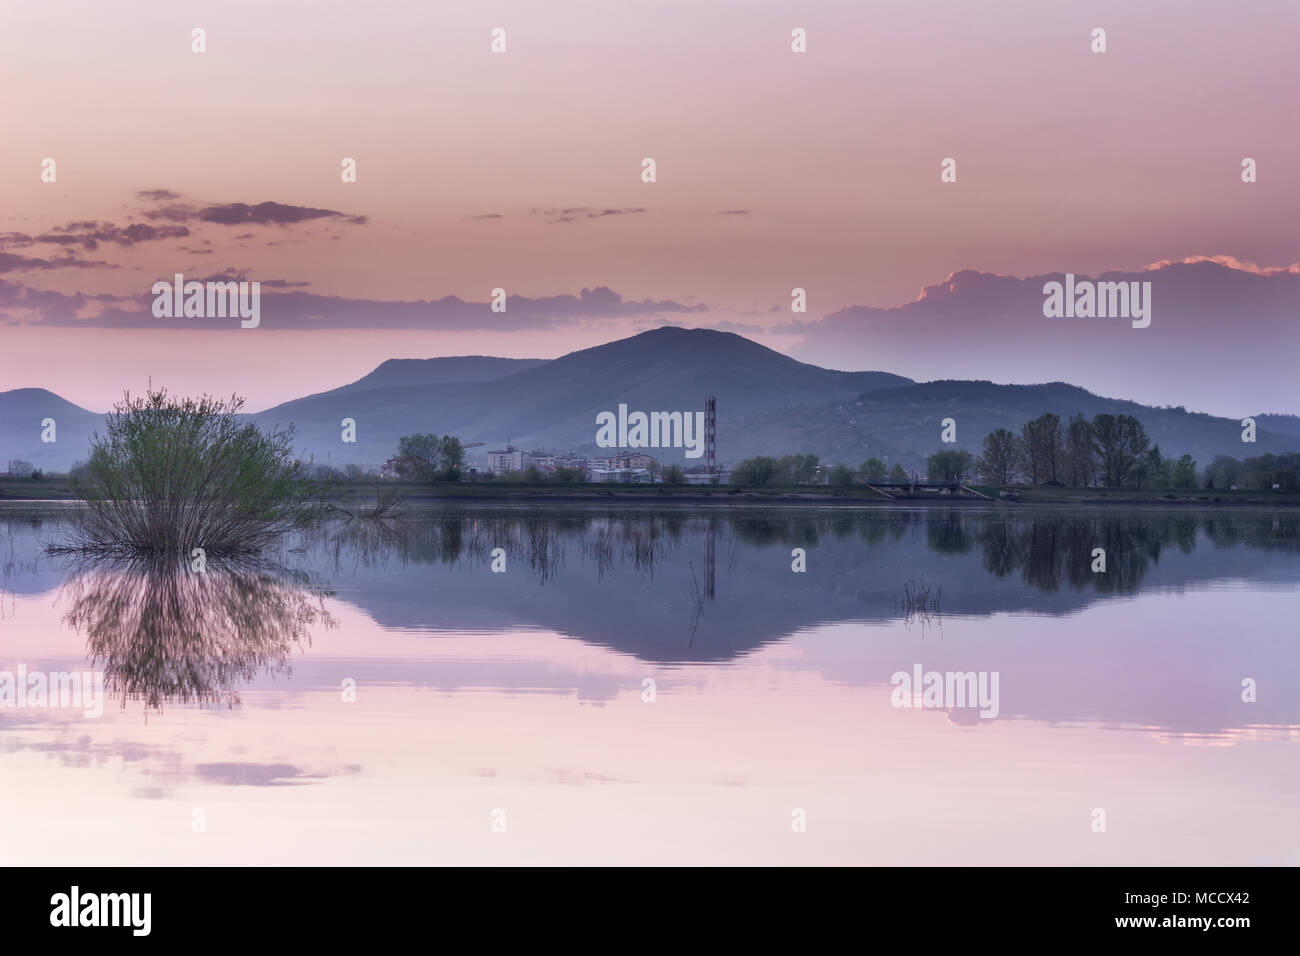 Distant mountain and city blue hour lake mirror reflection with purple sky and foreground bush - Stock Image